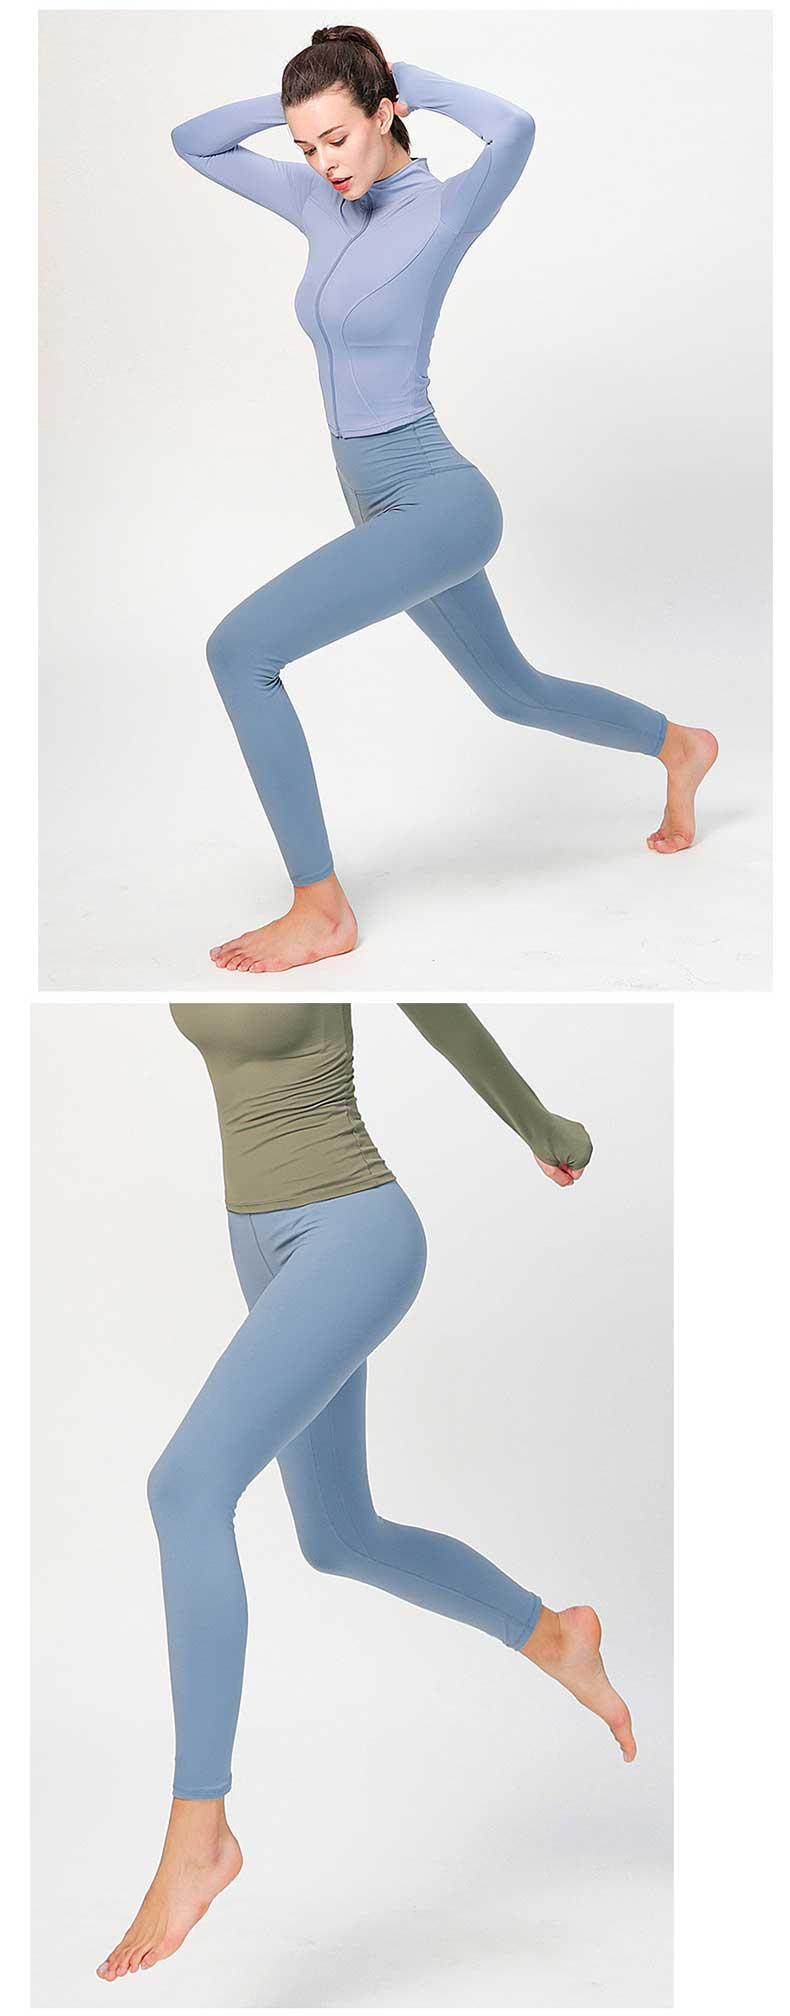 Exercise without worries, Combination of technology and practicality that is compression running tights